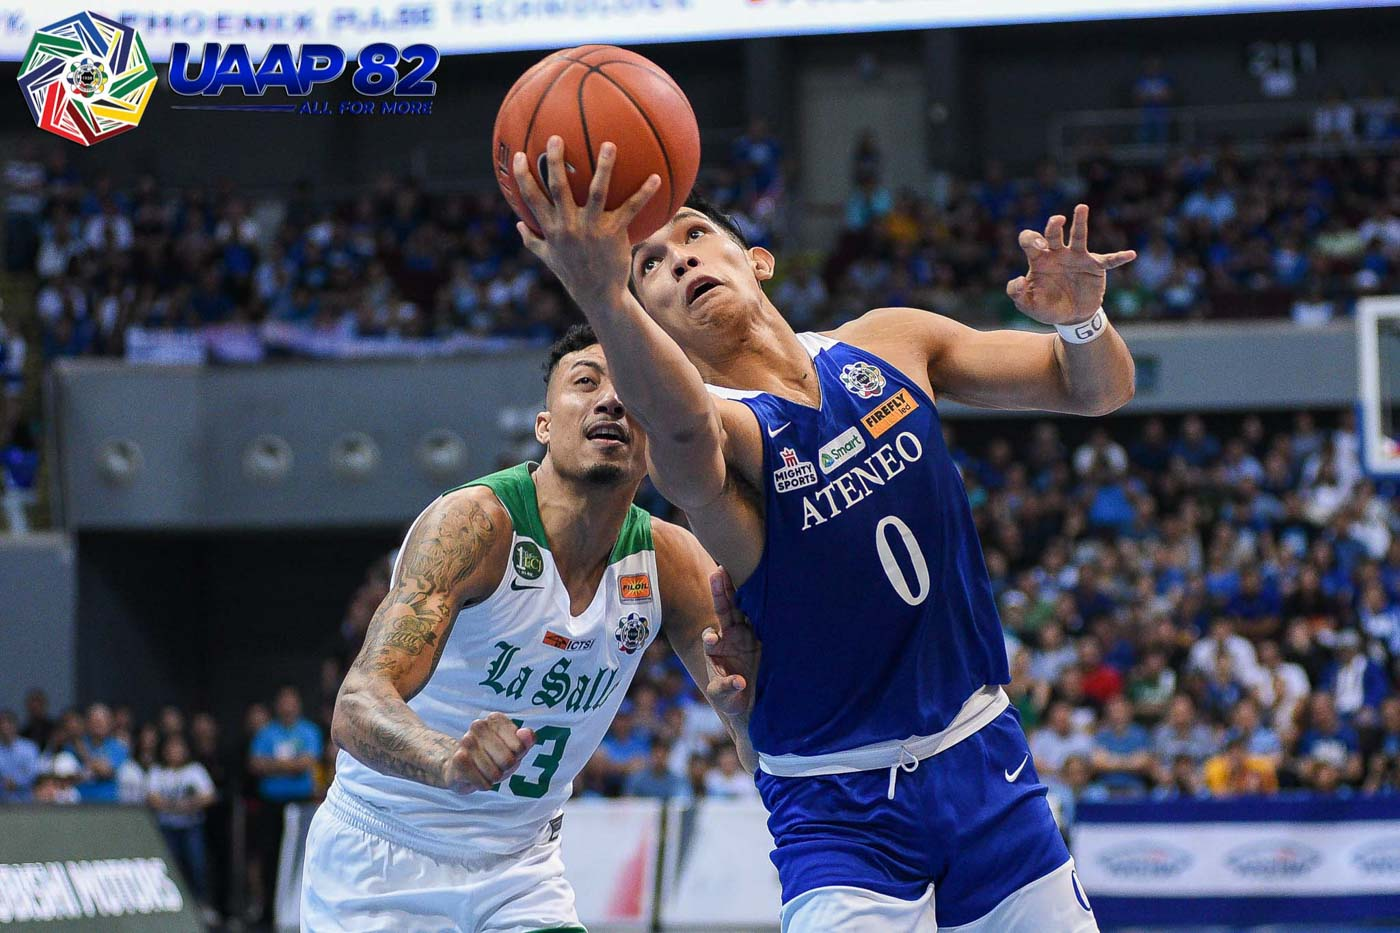 STEADY. As always, Thirdy Ravena keeps the Blue Eagles on an even keel to help Ateneo complete an elimination sweep of La Salle.  Photo release